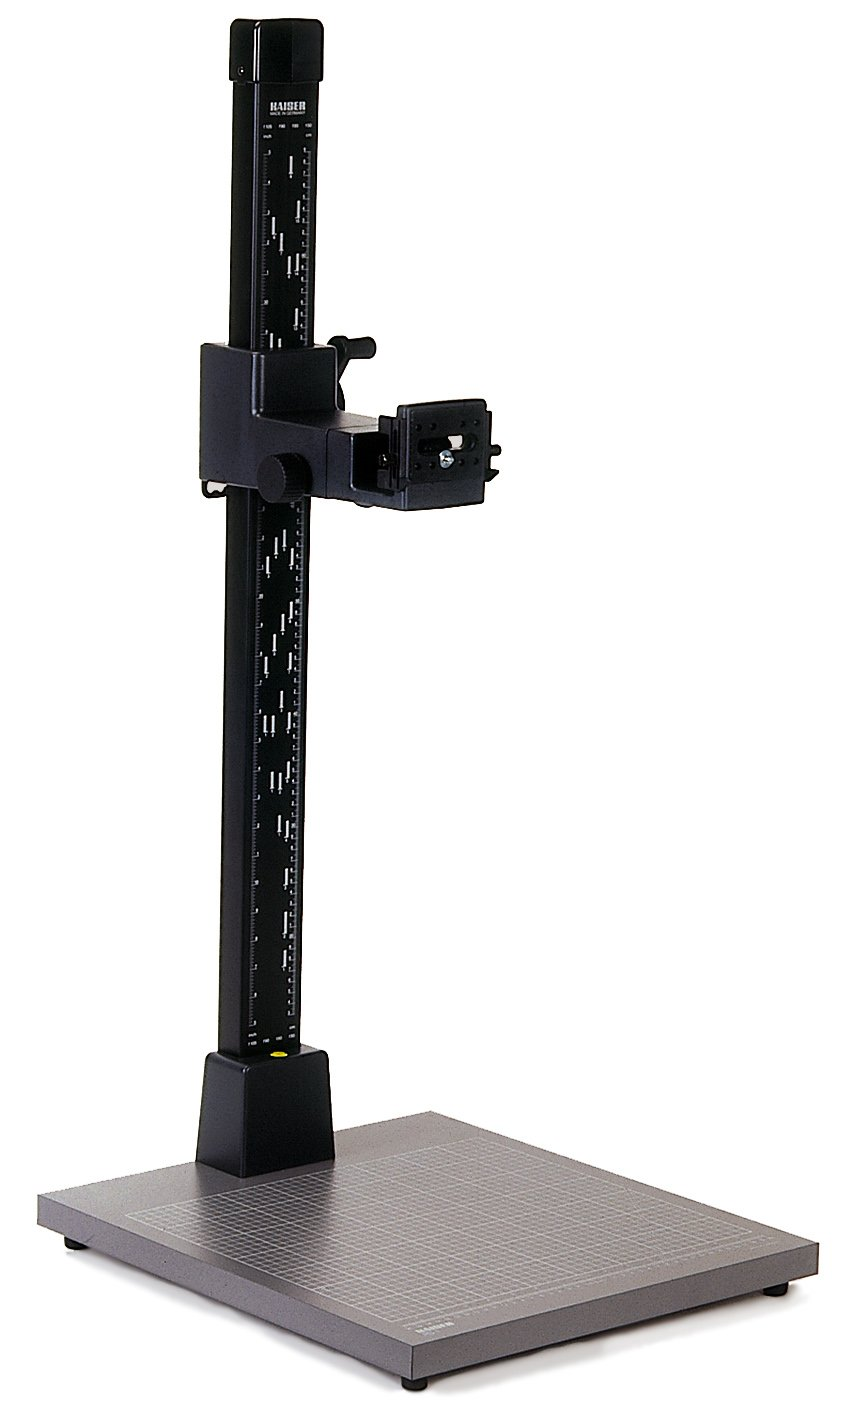 Kaiser 205510 Copy Stand RS 1 with RA 1 Arm by Kaiser